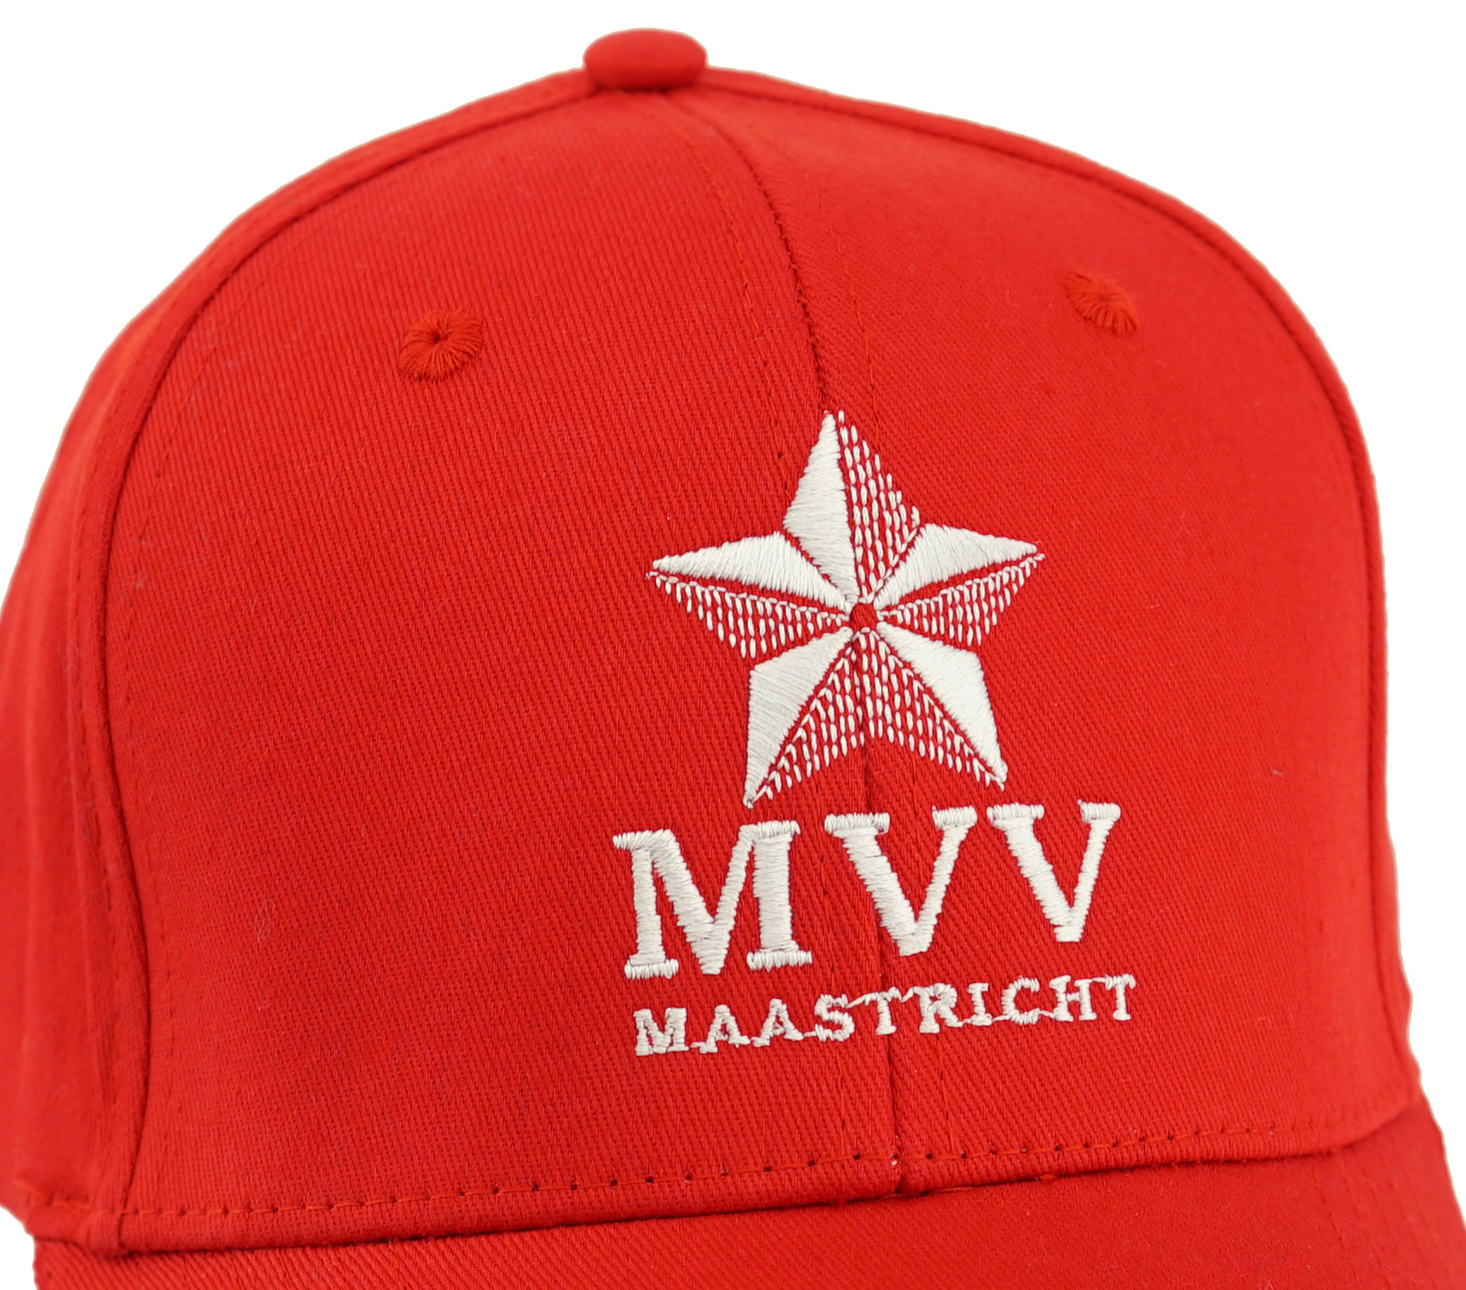 Topfanz Pet rood logo in borduur - MVV